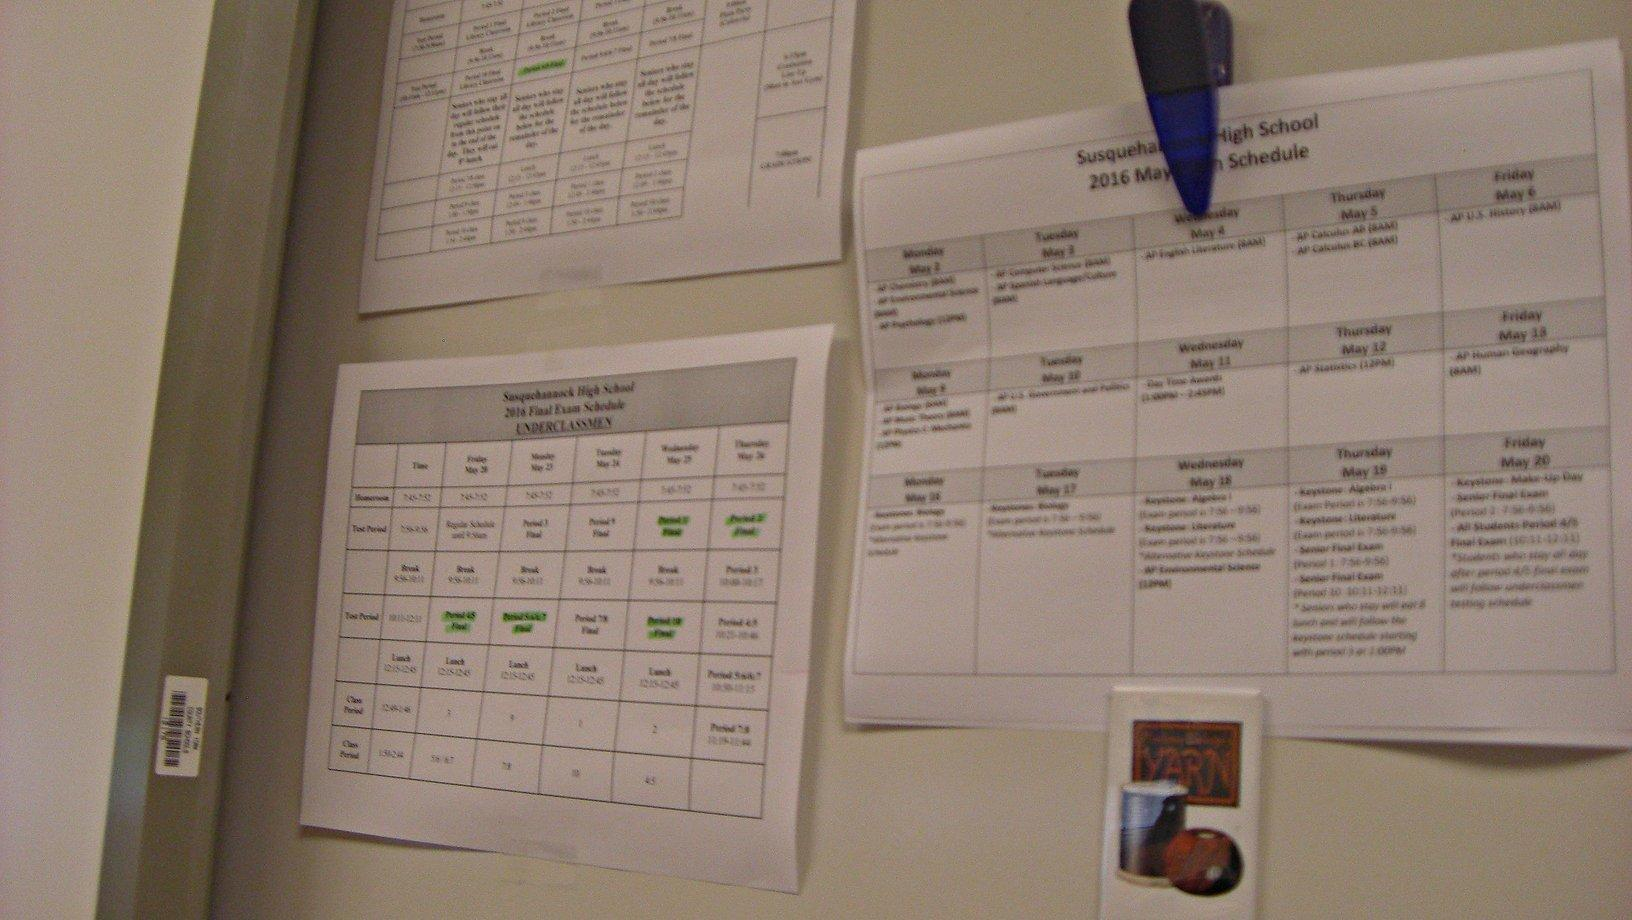 Many teachers have a finals schedule sheet hanging up in their classroom. Photo by: Ariel Barbera